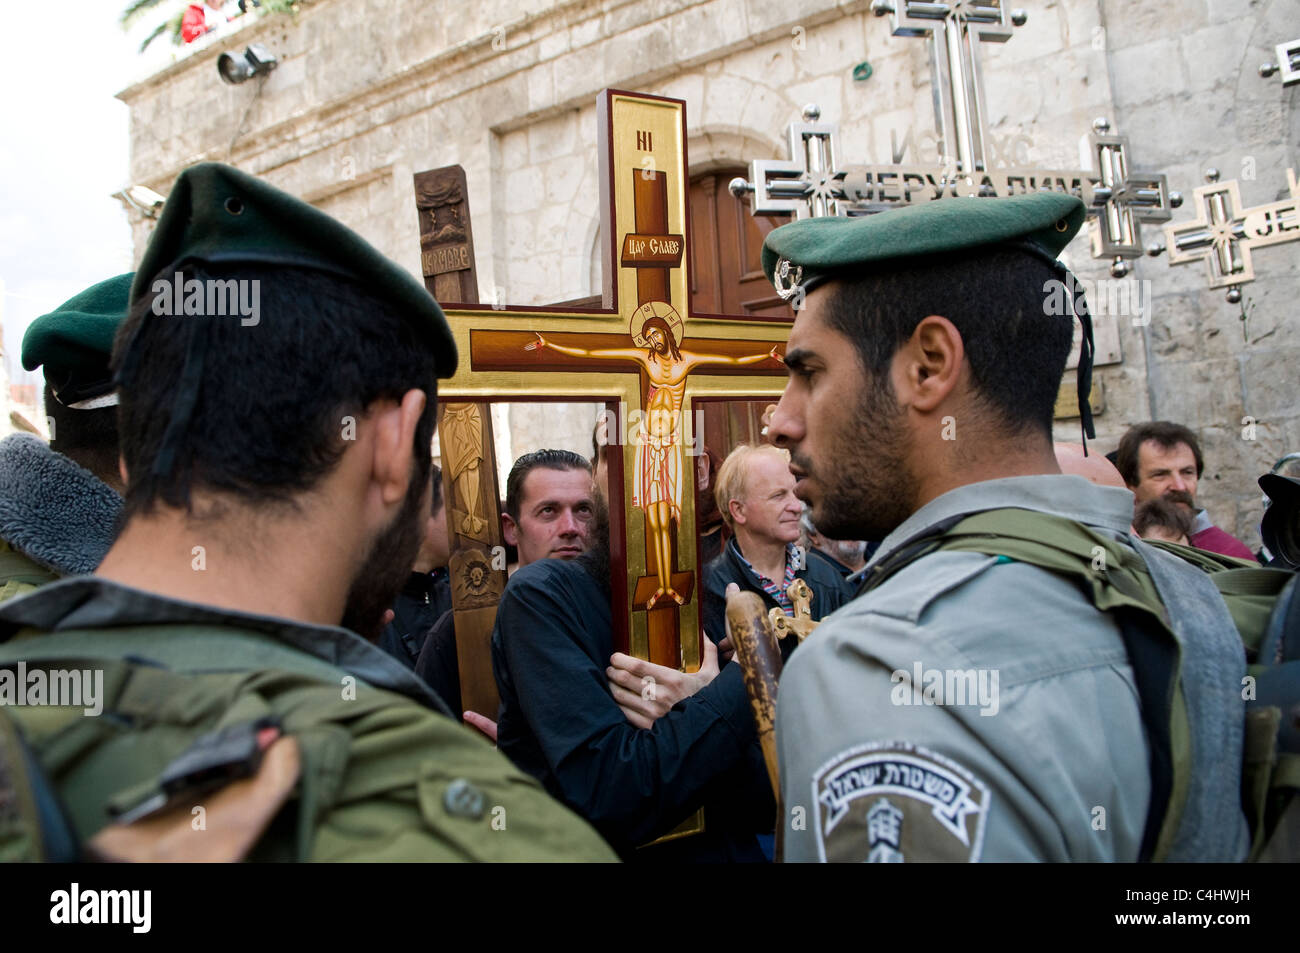 Israeli border police secure the 'Good Friday' procession in the Via Dolorosa in the old city of Jerusalem. - Stock Image